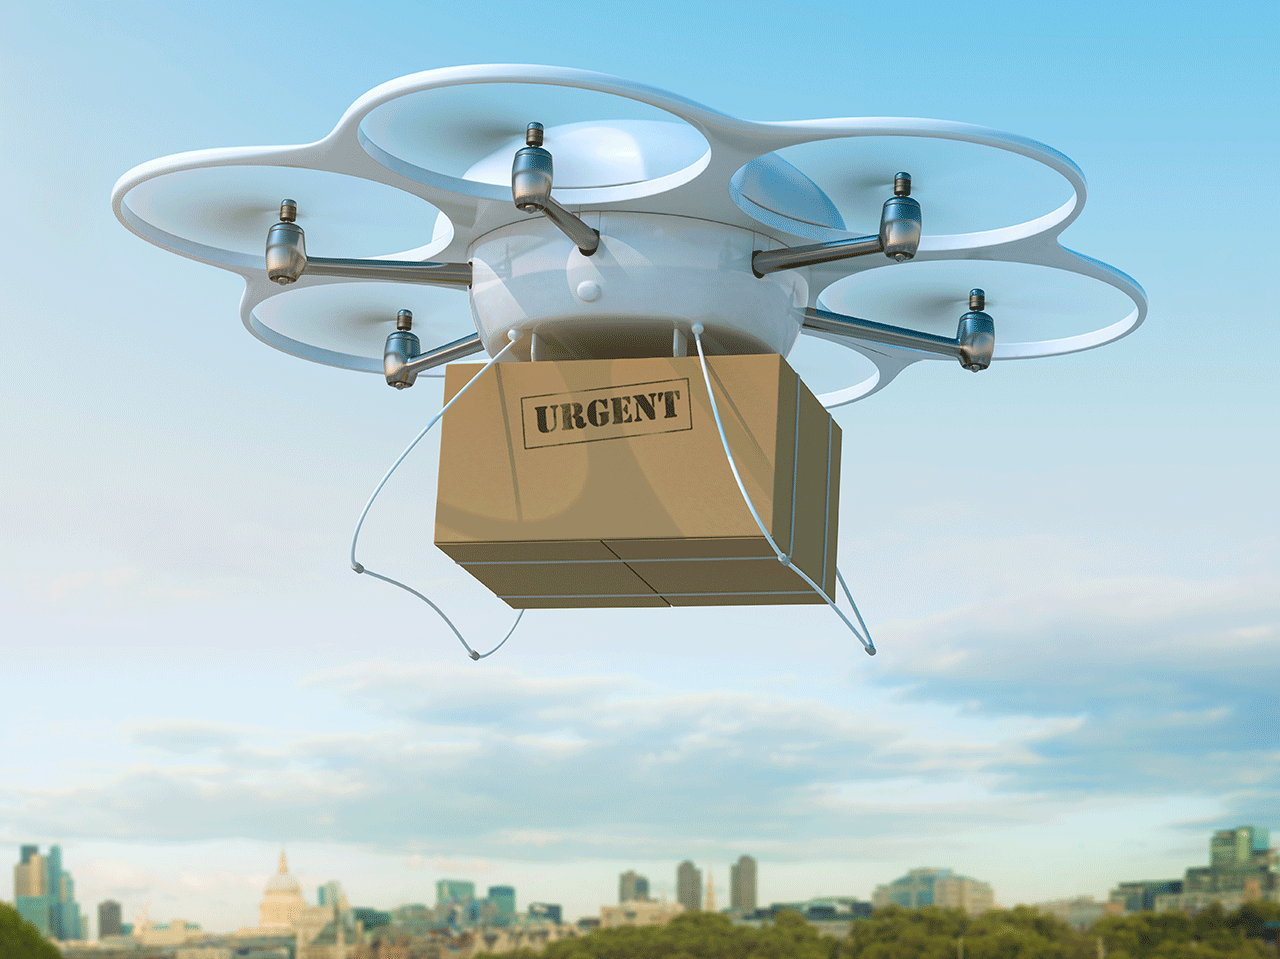 Environmentally Friendly Drone Delivery